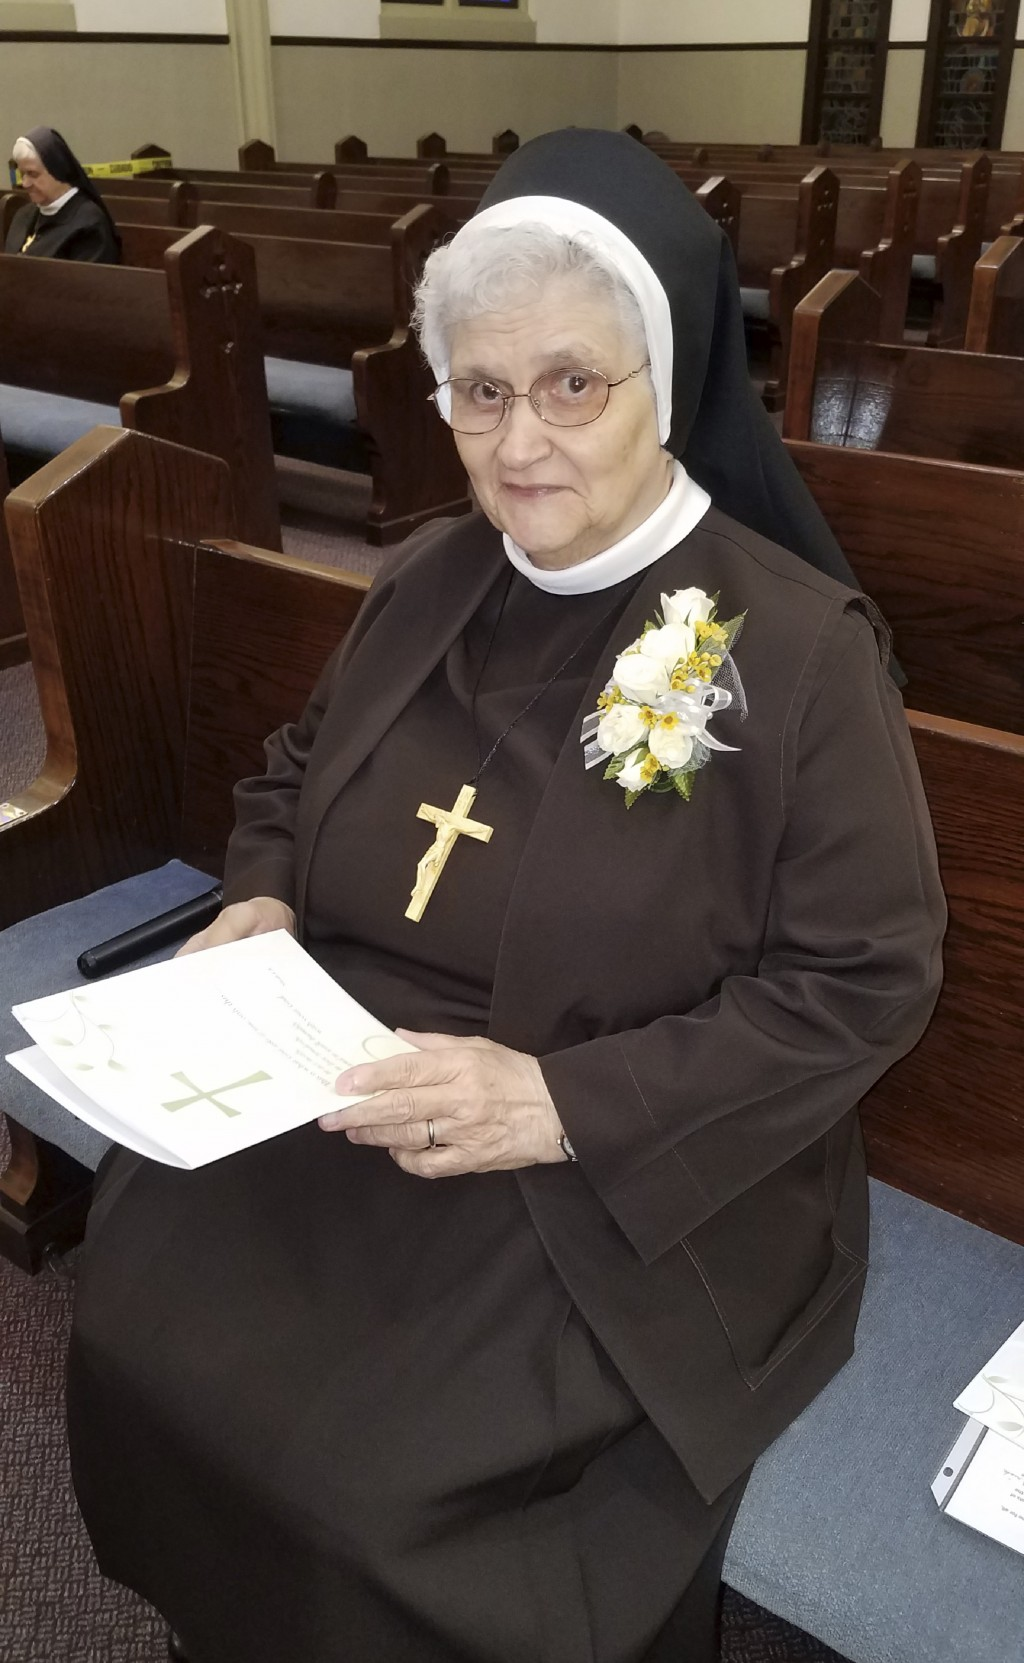 In this photo provided by Sister Mary Jeanine Morozowich, Sister Mary Evelyn Labik is recognized for her 60 years with the Felician Sisters of North A...